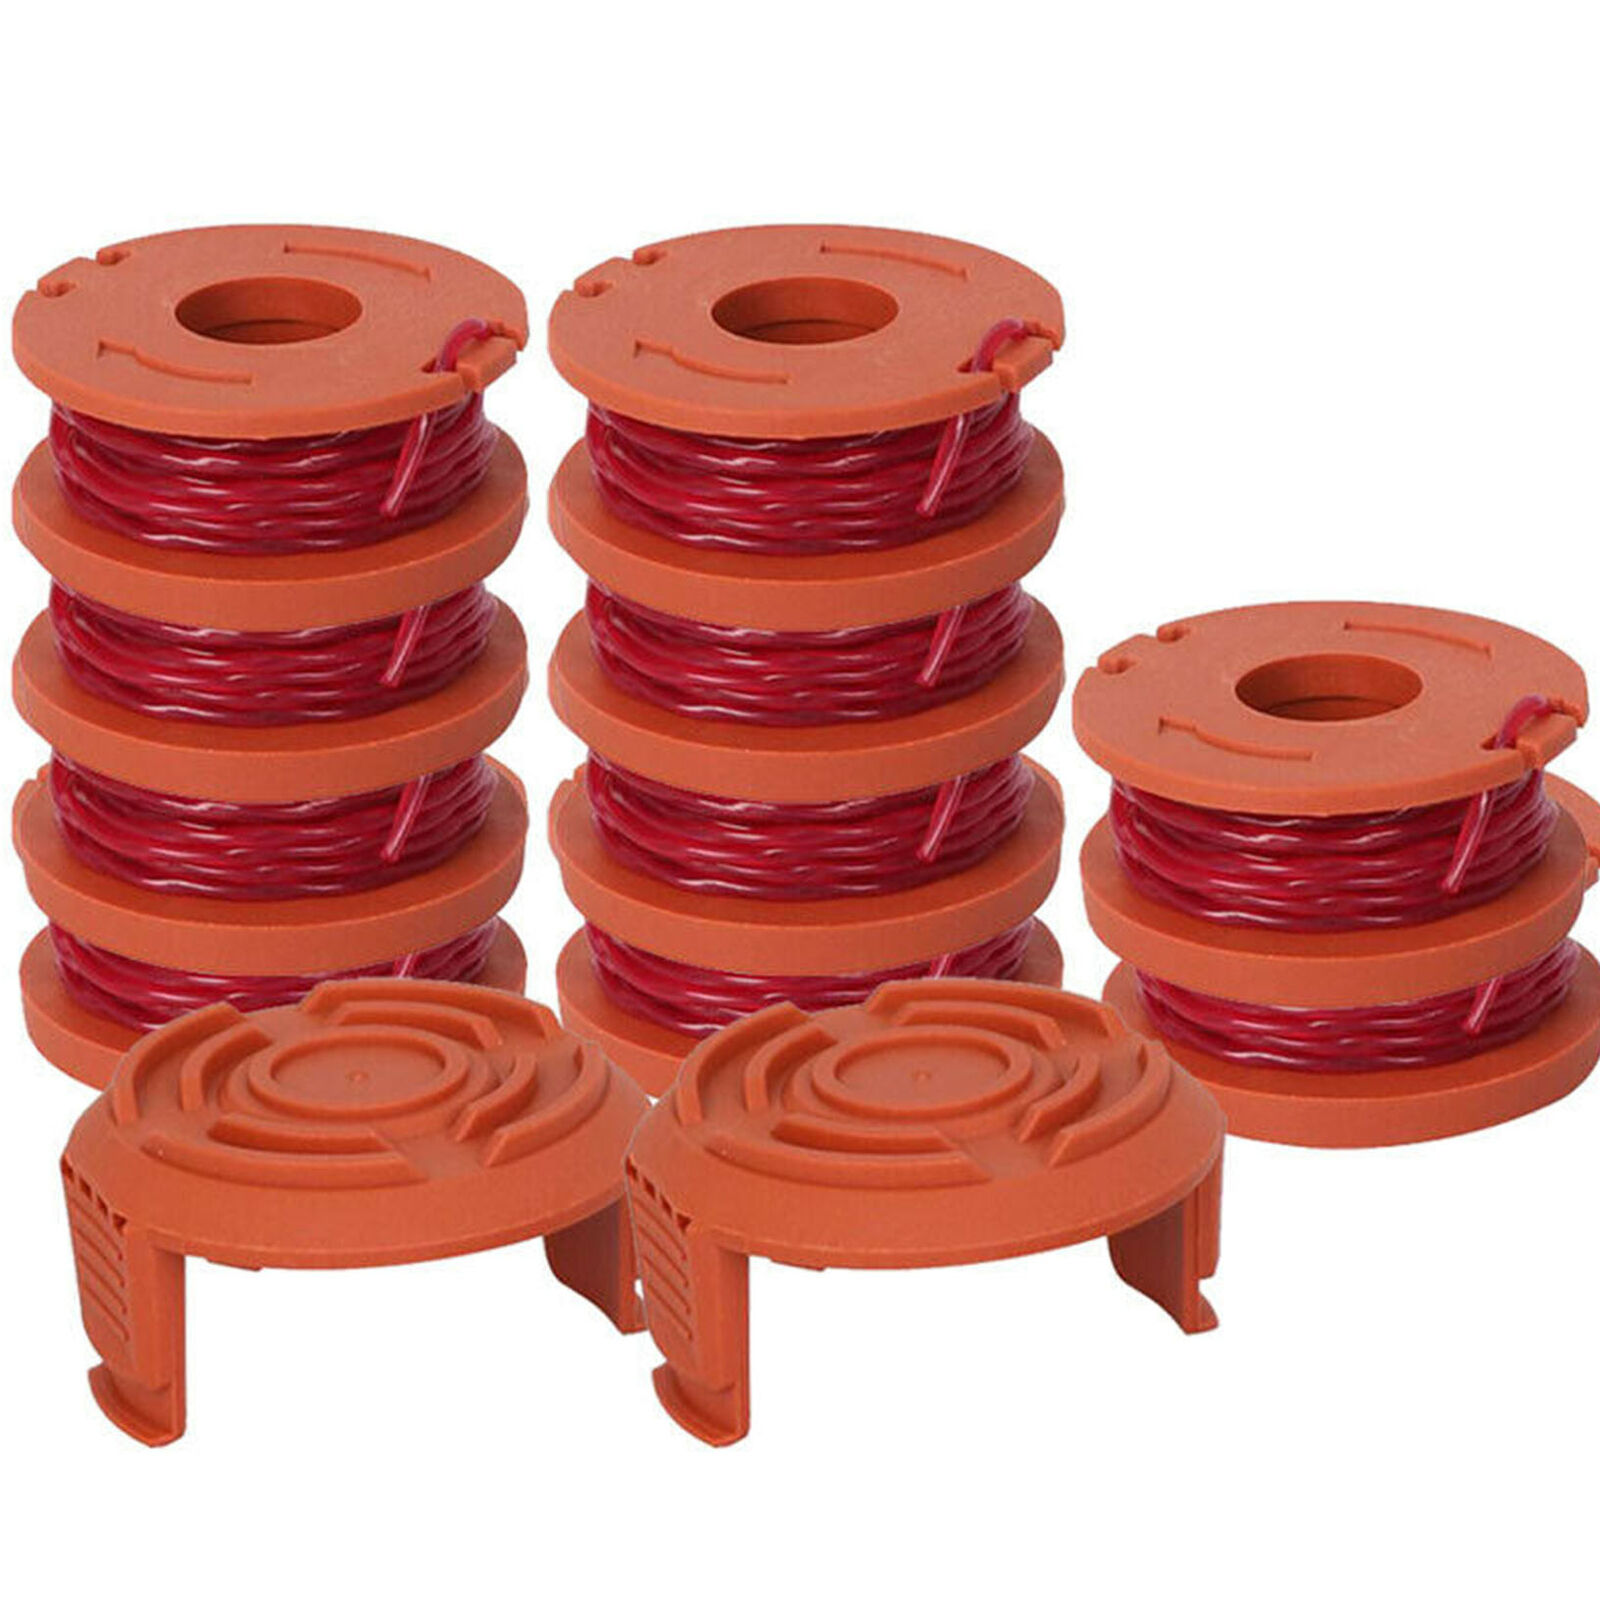 2 Caps 12 Pack Replacement Spool String Trimmer Line For WORX 10 Pack Spools